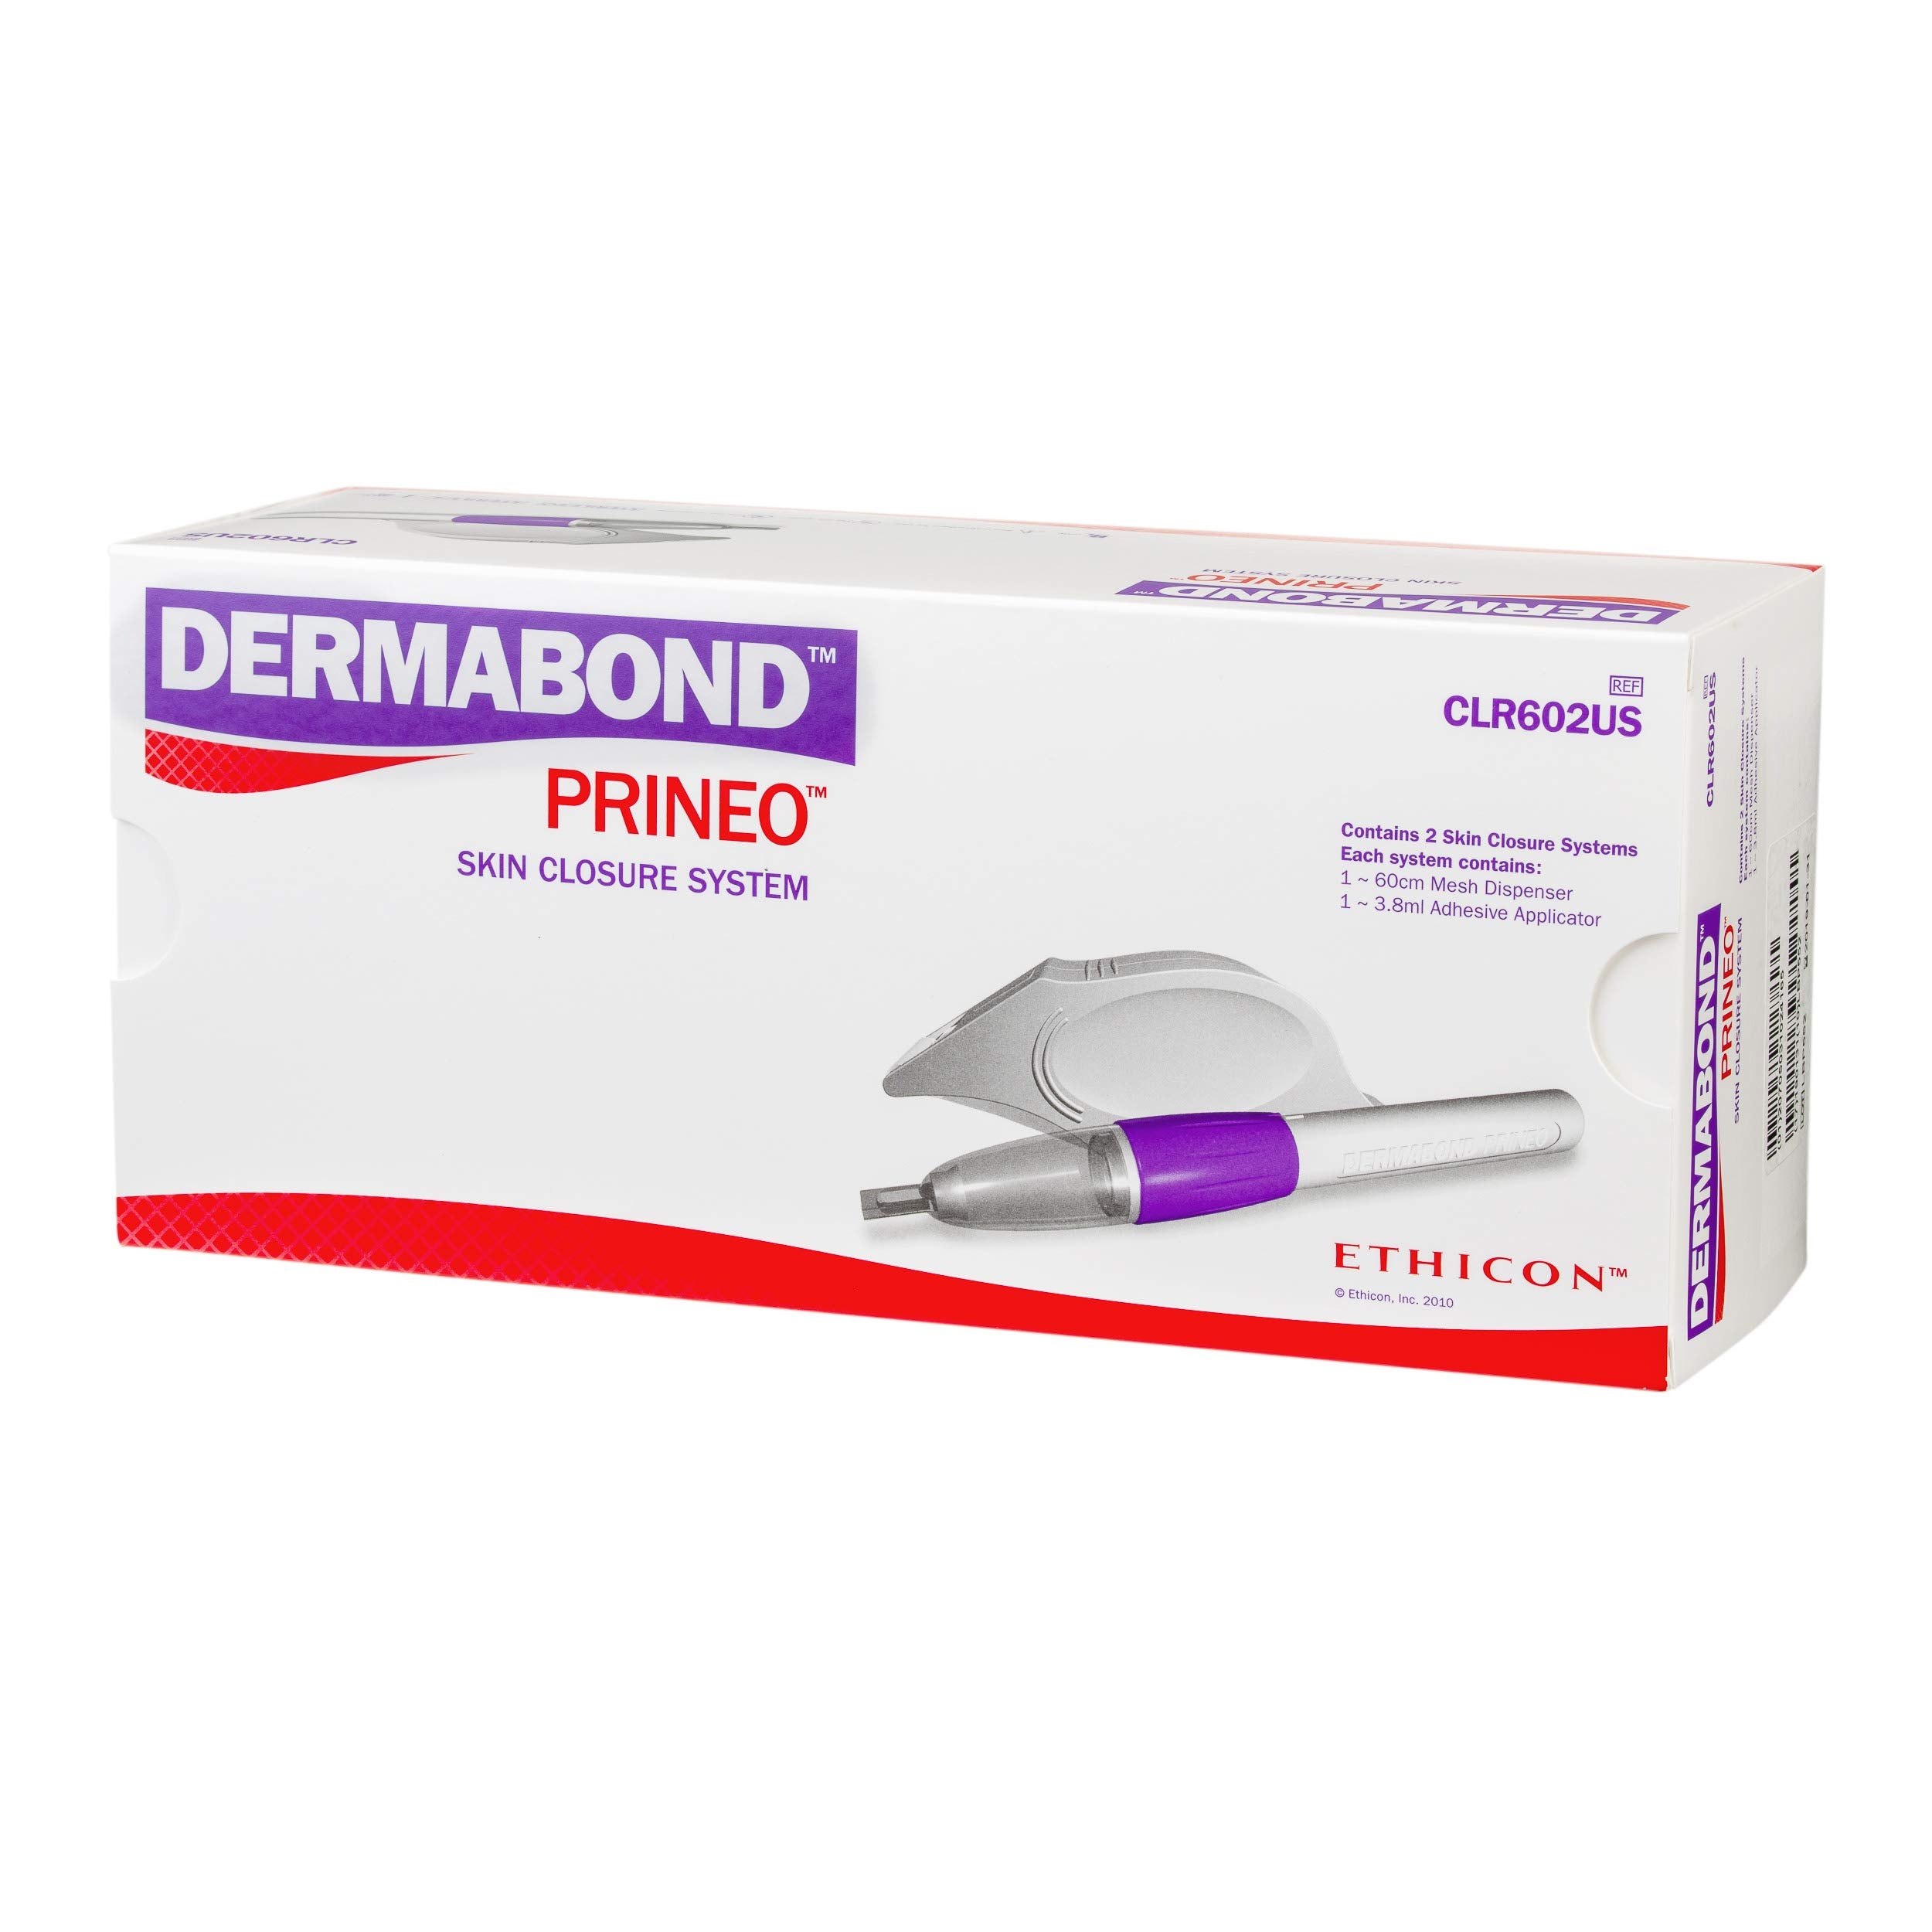 Ethicon DERMABOND PRINEO Skin Closure System (60 cm), CLR602US, Combination of Self-Adhering Mesh and Topical Skin Adhesive, Medical Supplies